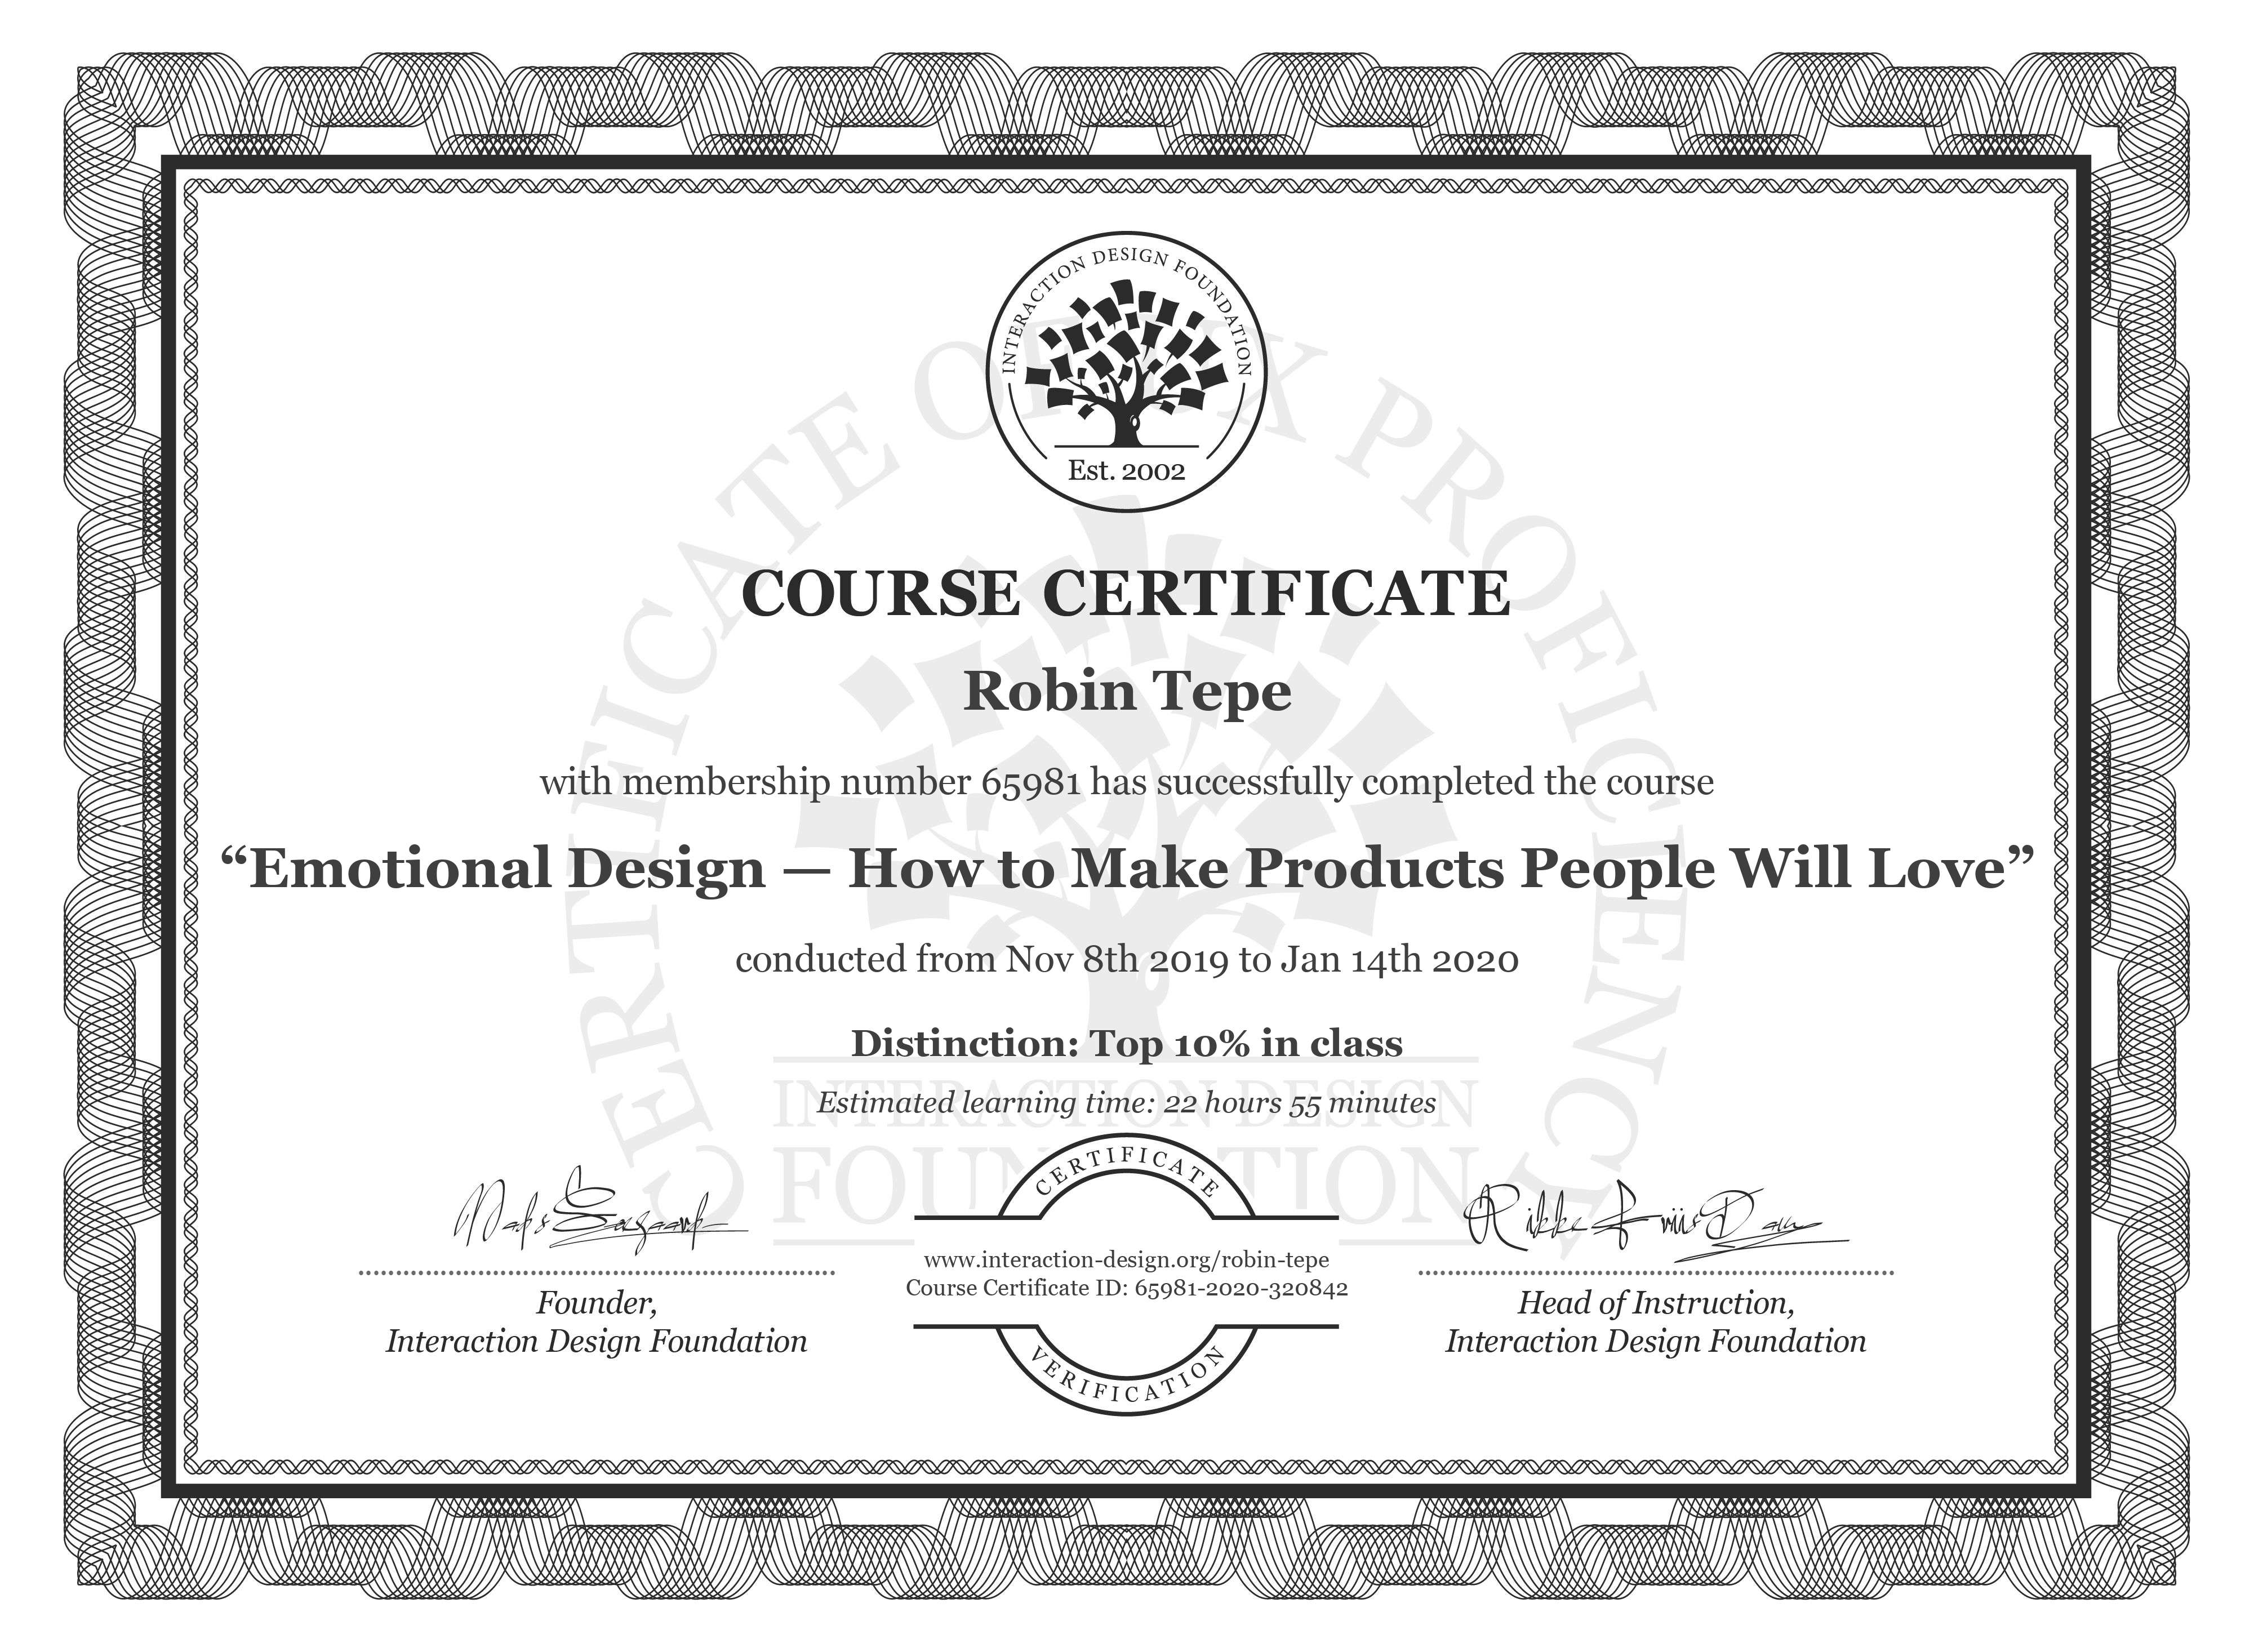 Robin Tepe's Course Certificate: Emotional Design — How to Make Products People Will Love